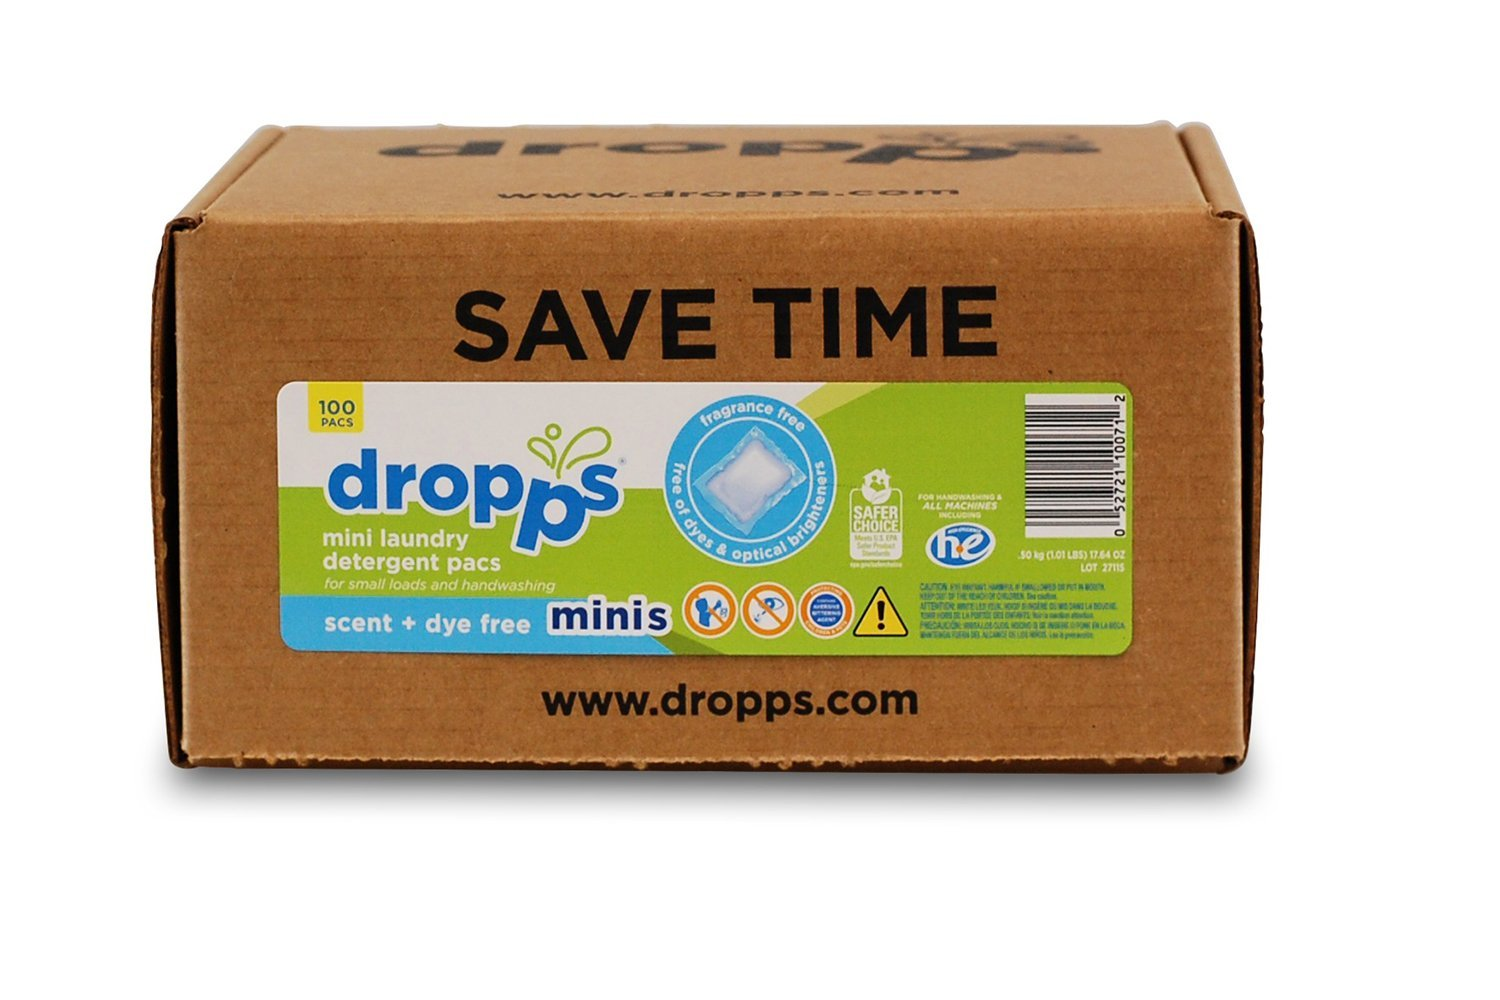 Dropps Sensitive Skin Mini HE Natural Laundry Detergent Pods, Unscented, 100 Count, Free and Clear